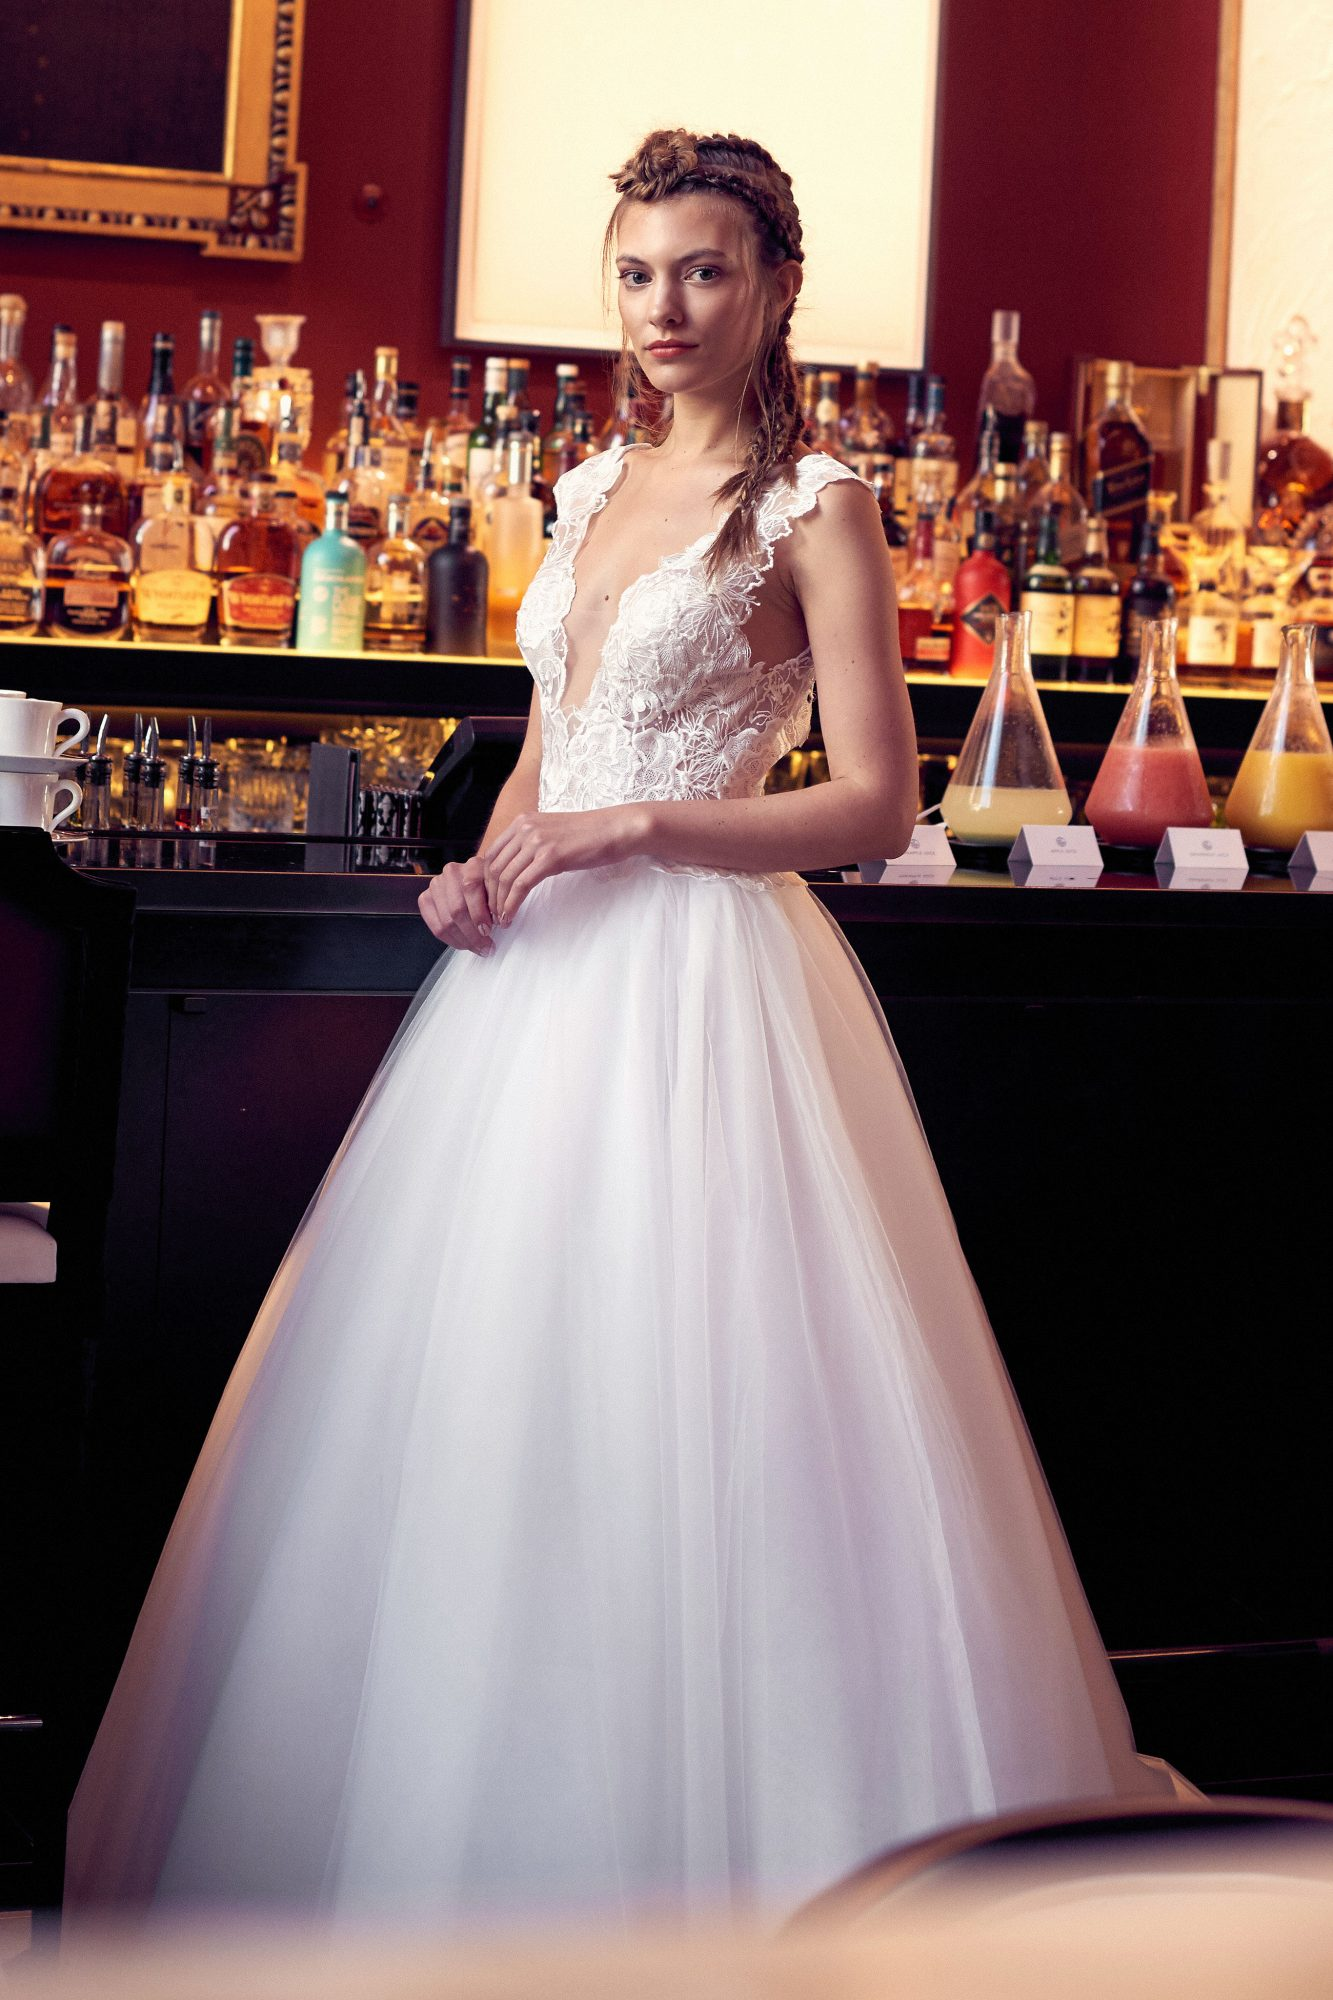 isabelle armstrong wedding dress fall 2018 v-neck cap sleeves lace ball gown